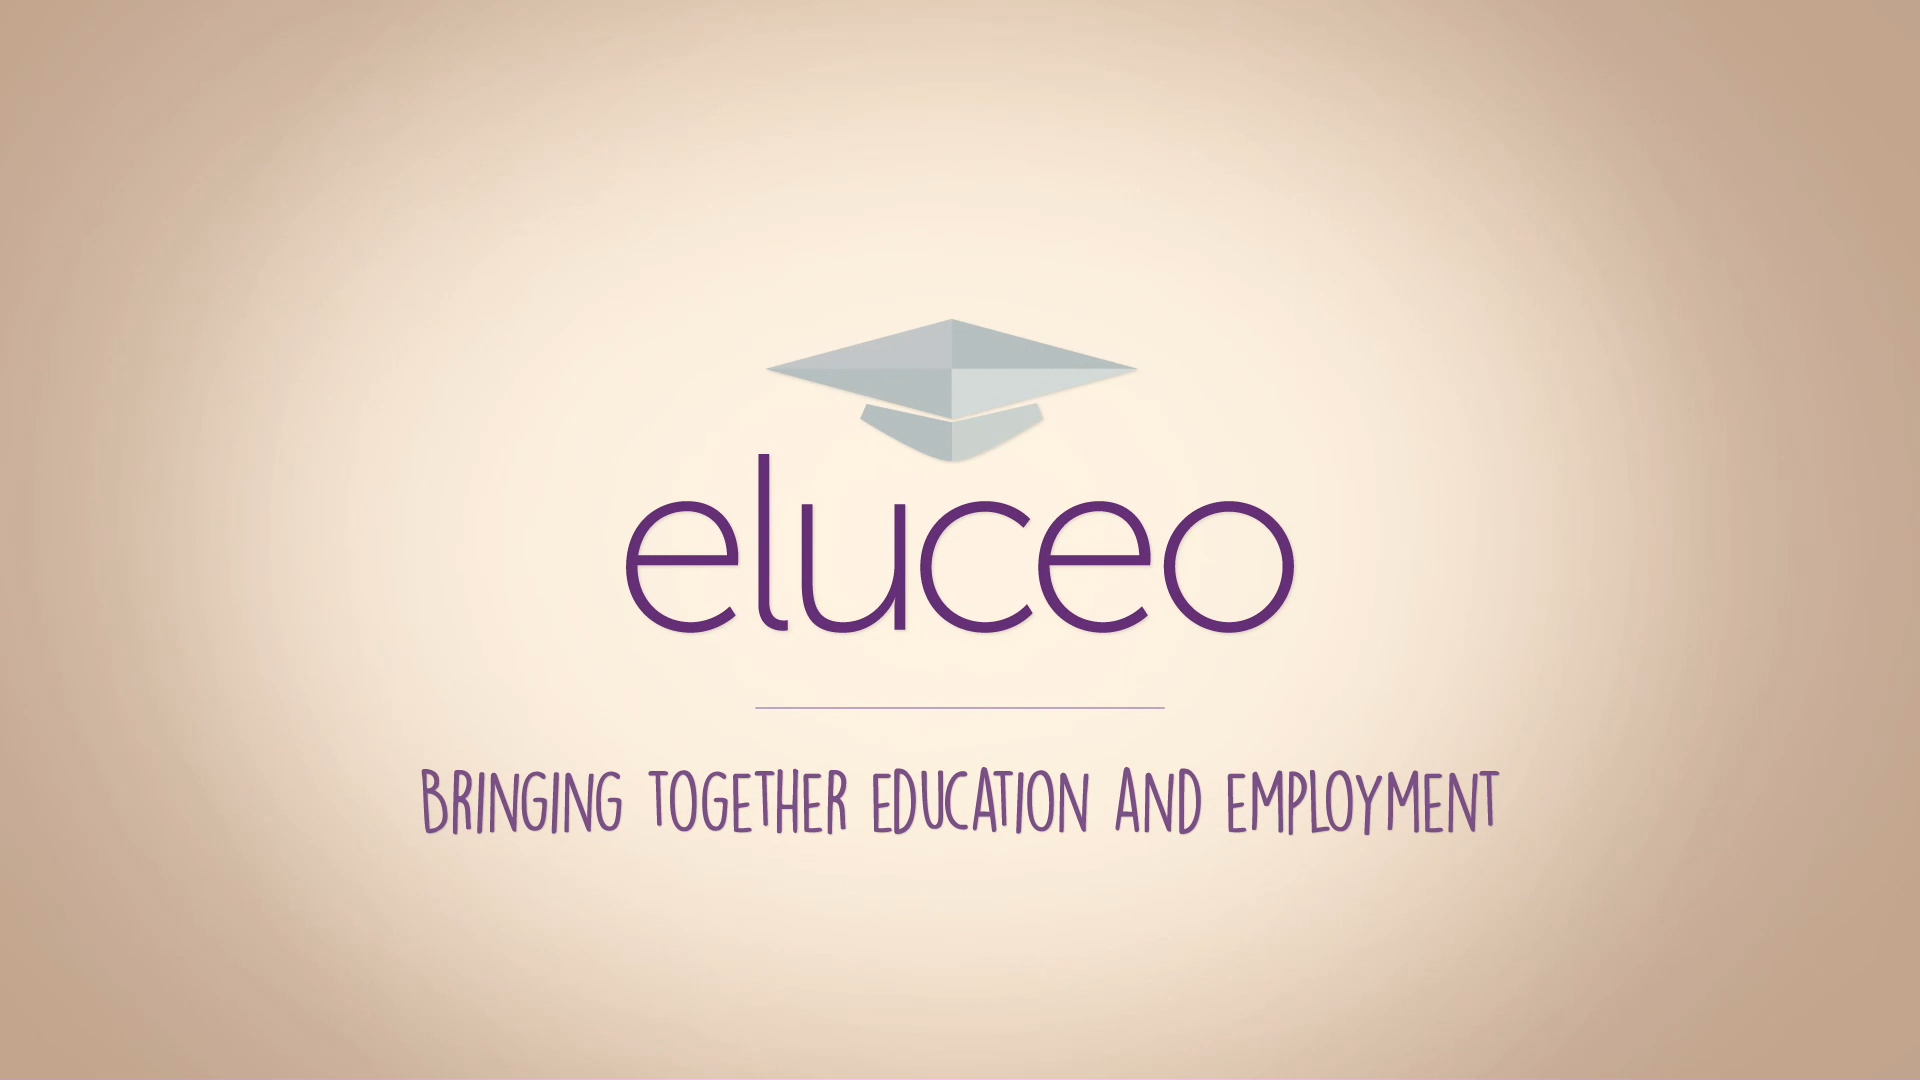 Eluceo: Bringing Together Education and Employment